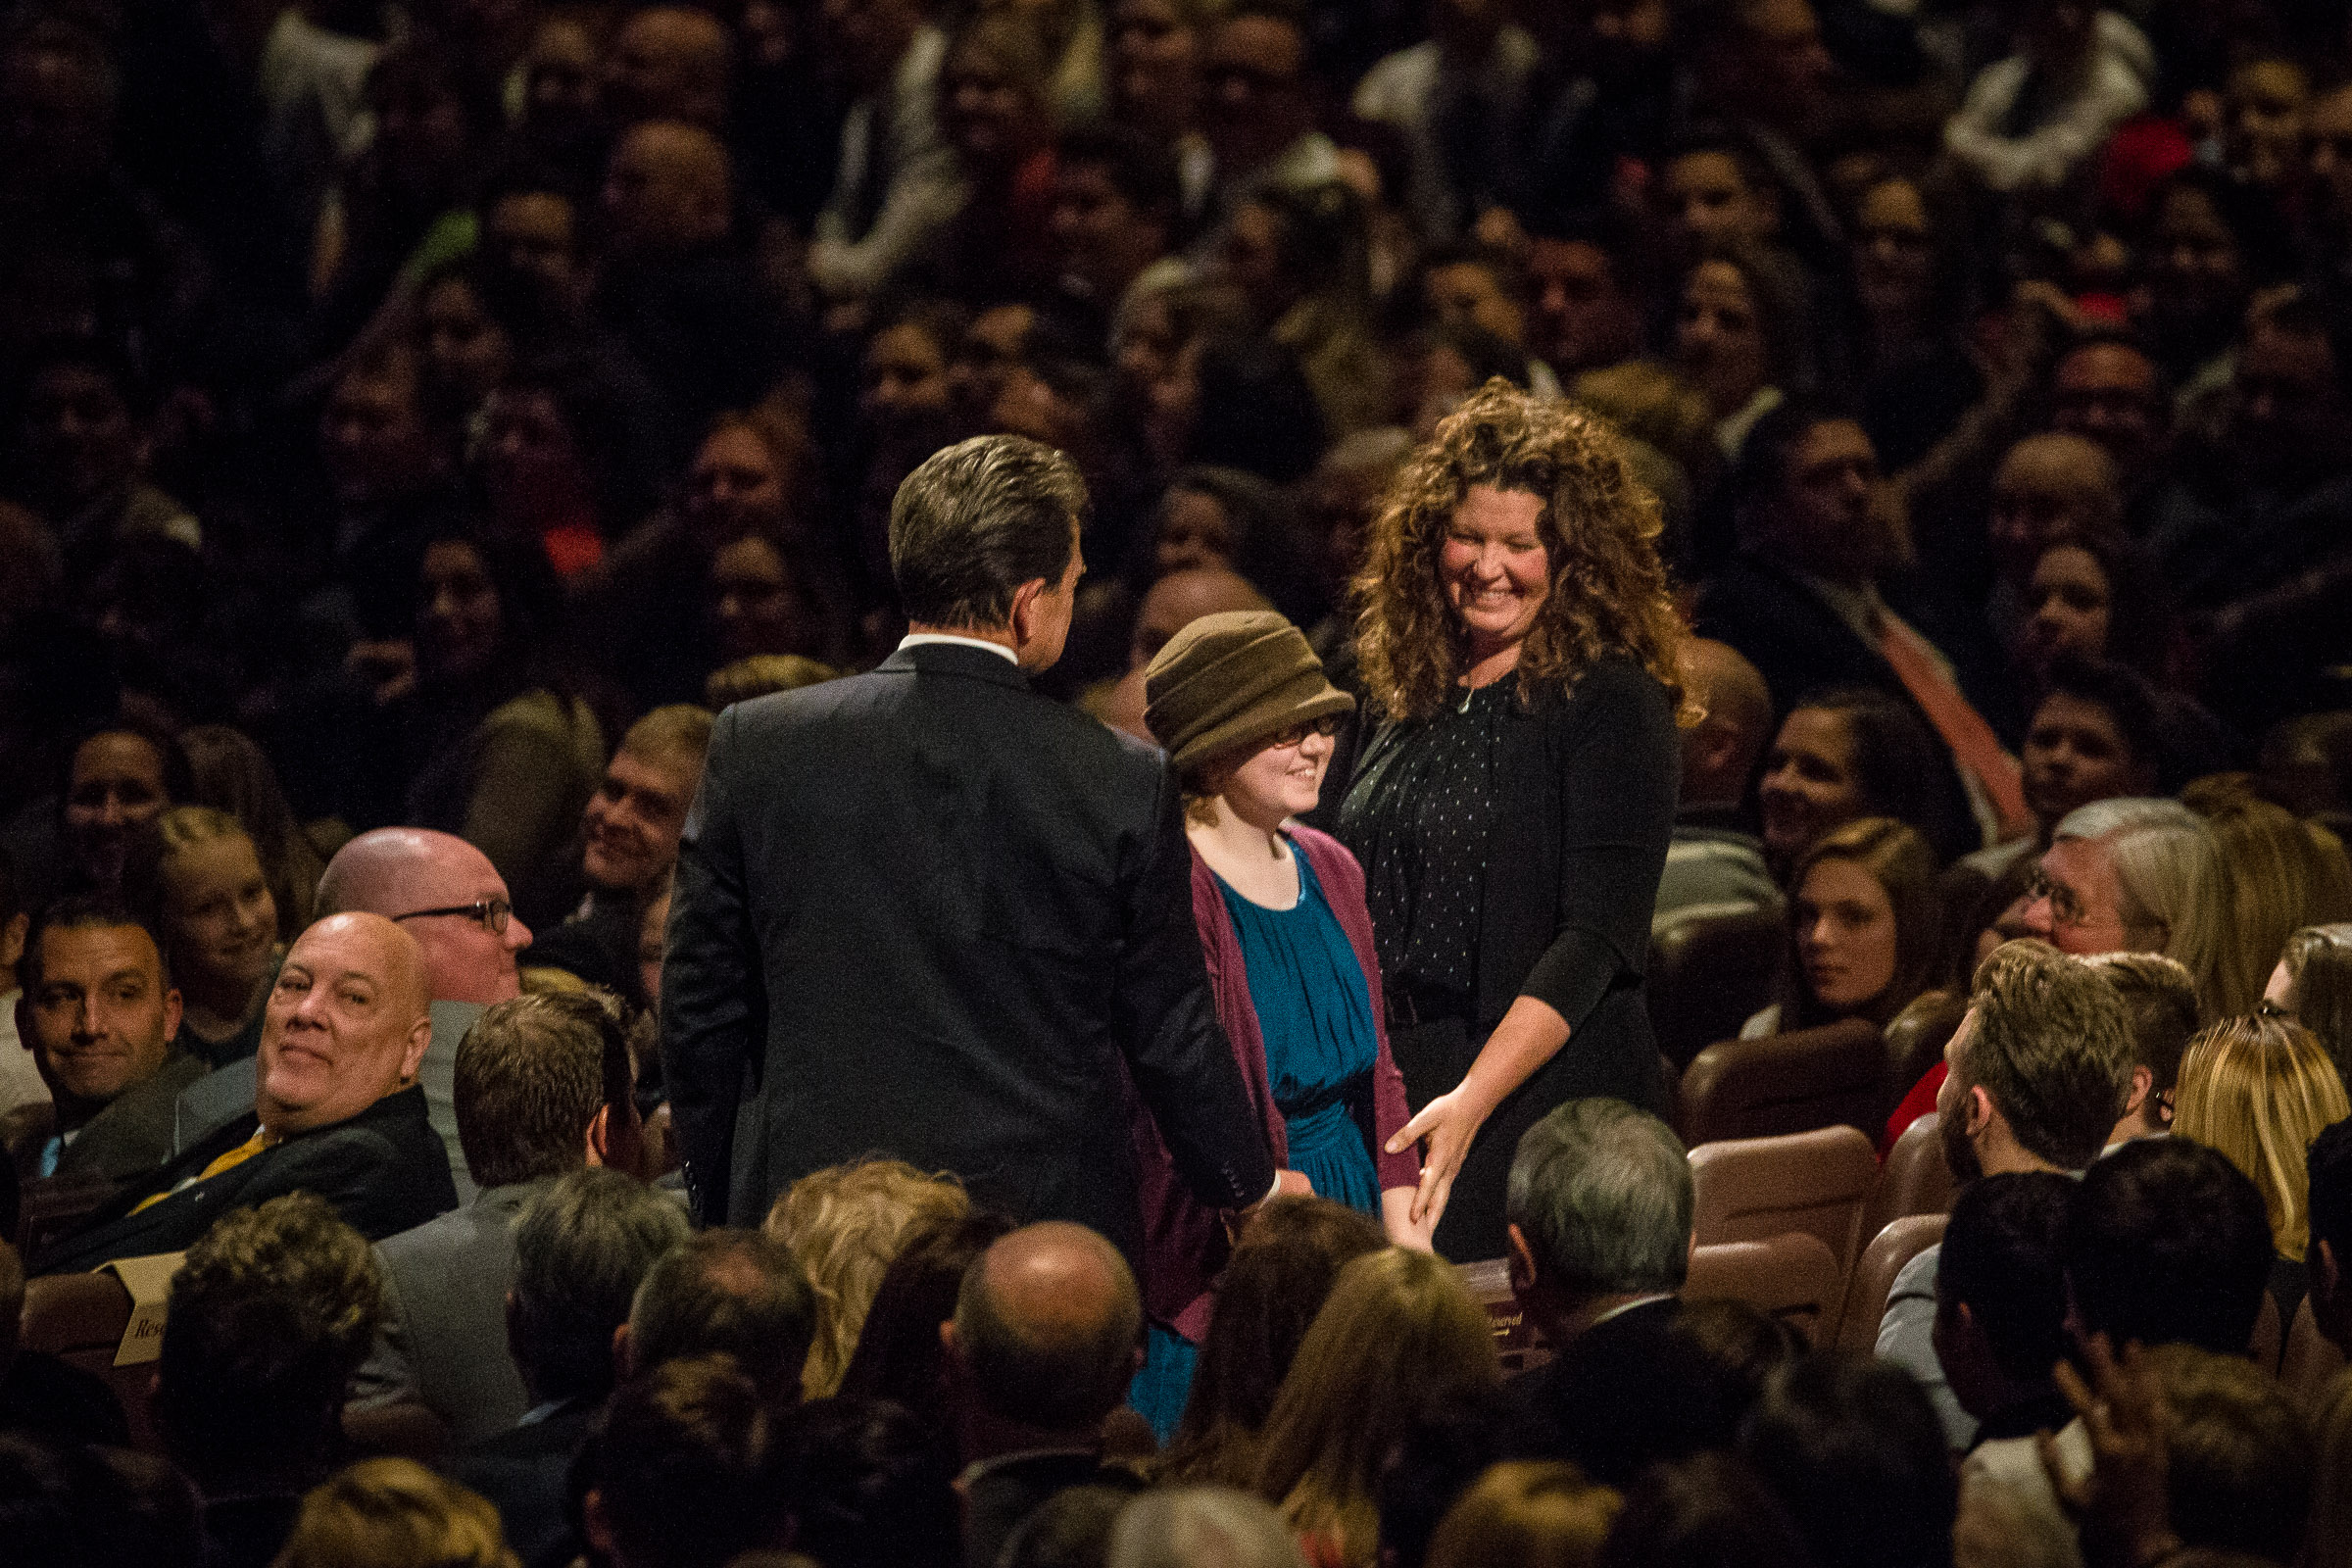 Stephen Terry, left, Lydia Terry, 12, and Kellie Terry stand up and are recognized during President Russell M. Nelson's speech at the First Presidency's Christmas Devotional in the Conference Center in Salt Lake City on Sunday, Dec. 2, 2018. Lydia, of Bountiful, suffers from a rare, aggressive form of brain cancer.